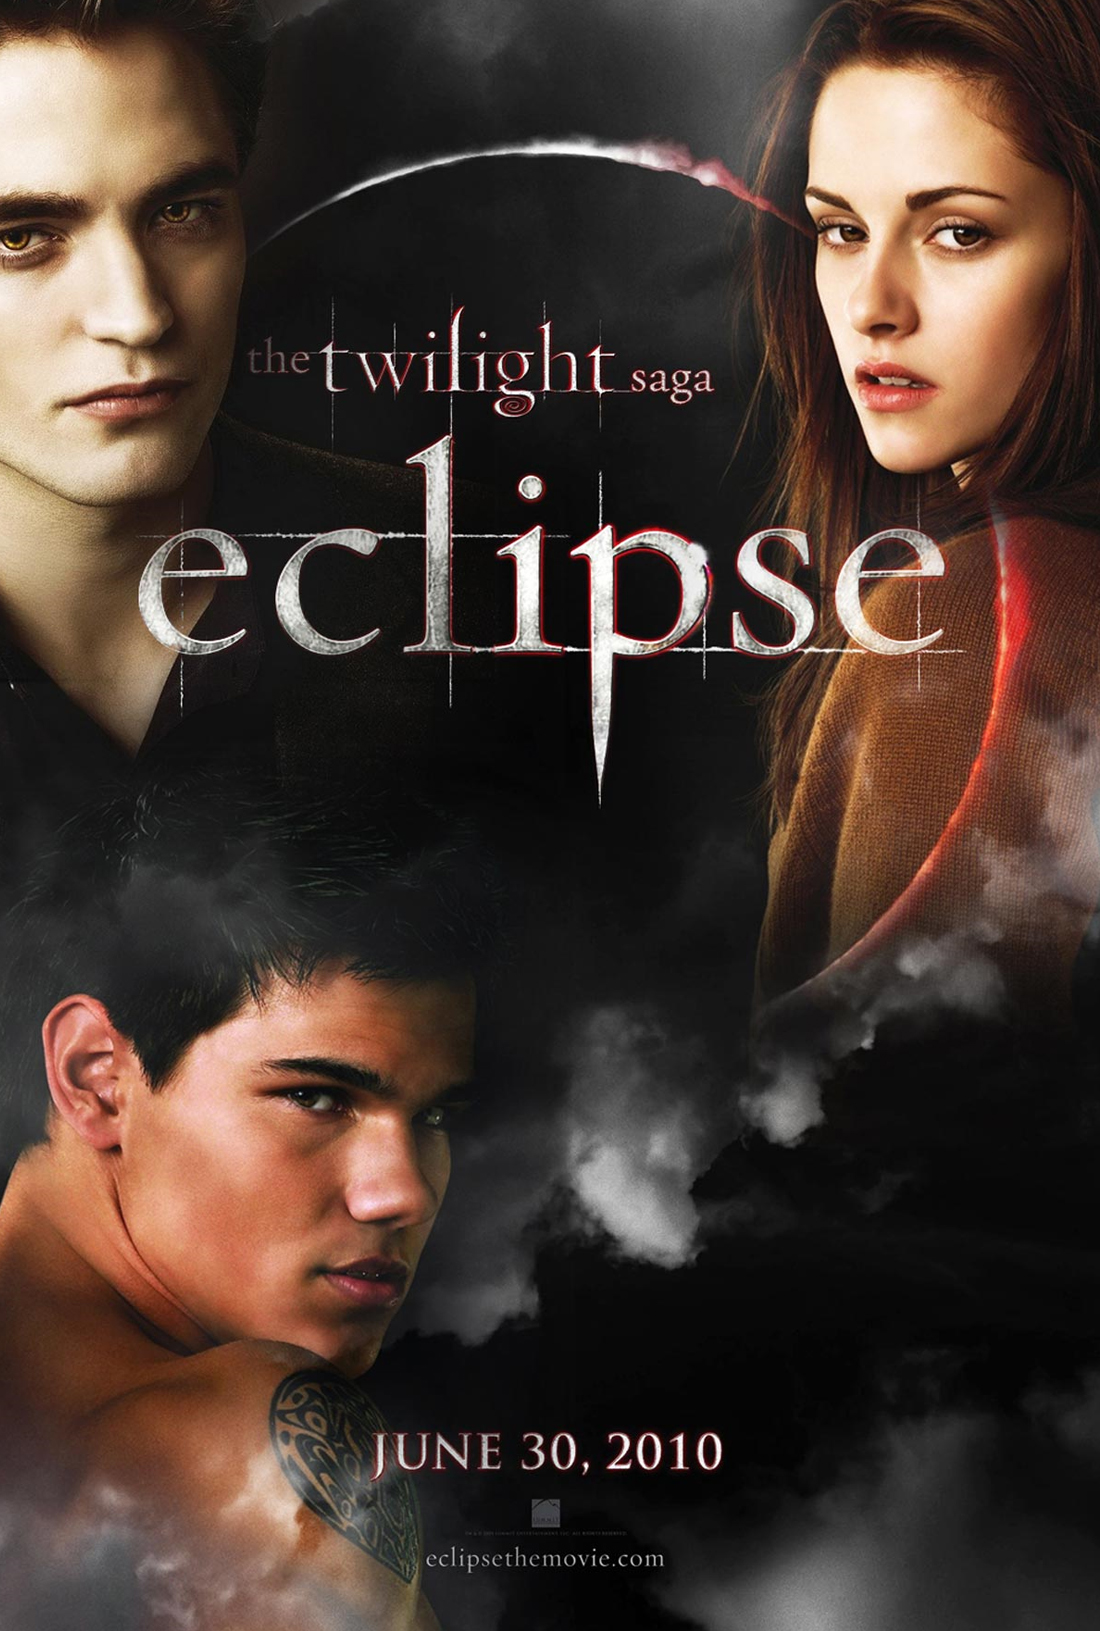 the-twilight-saga-eclipse-posters.jpg